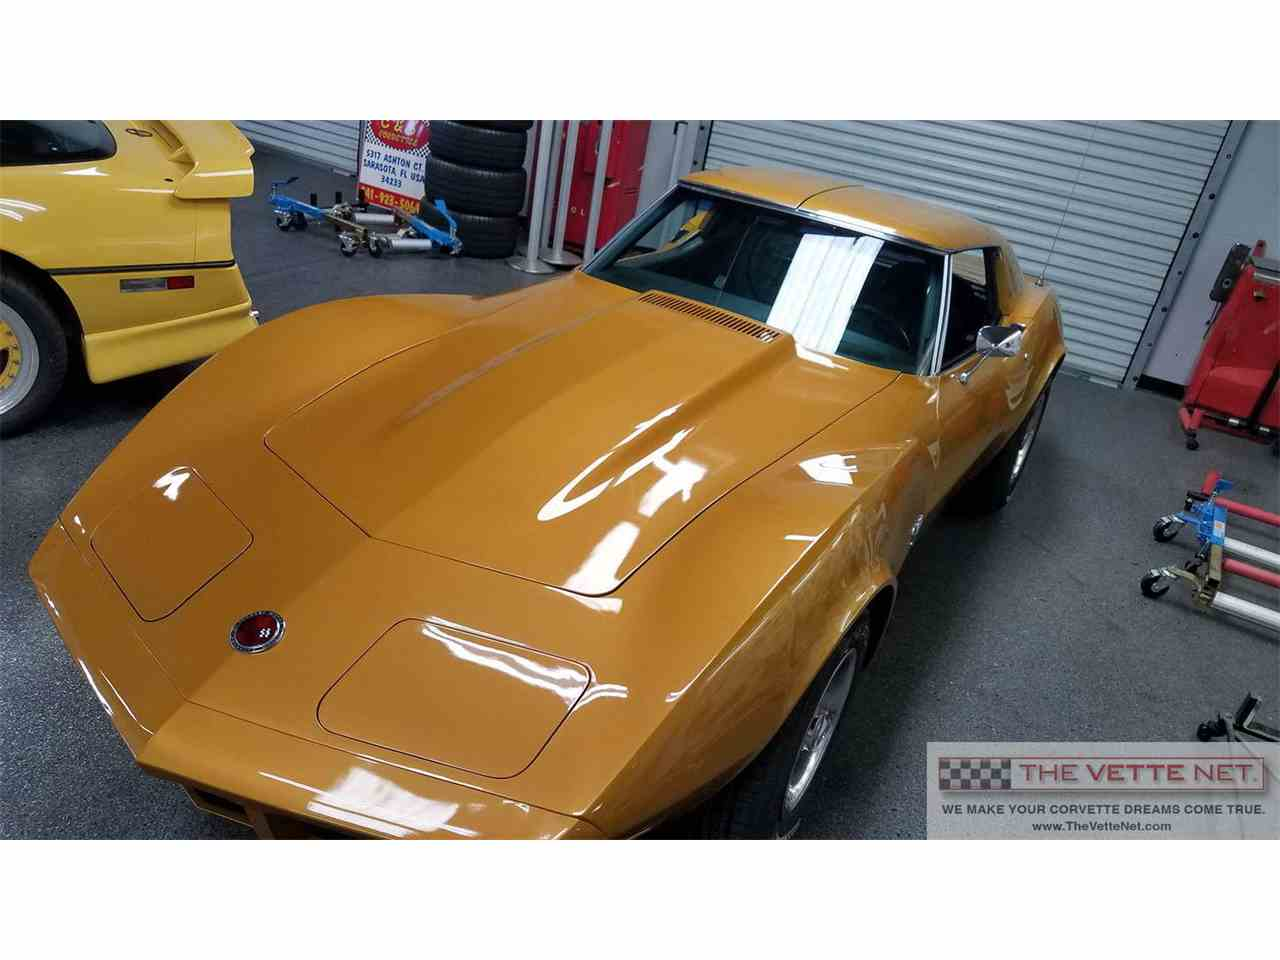 Picture of 1973 chevrolet corvette coupe exterior - Photo 2